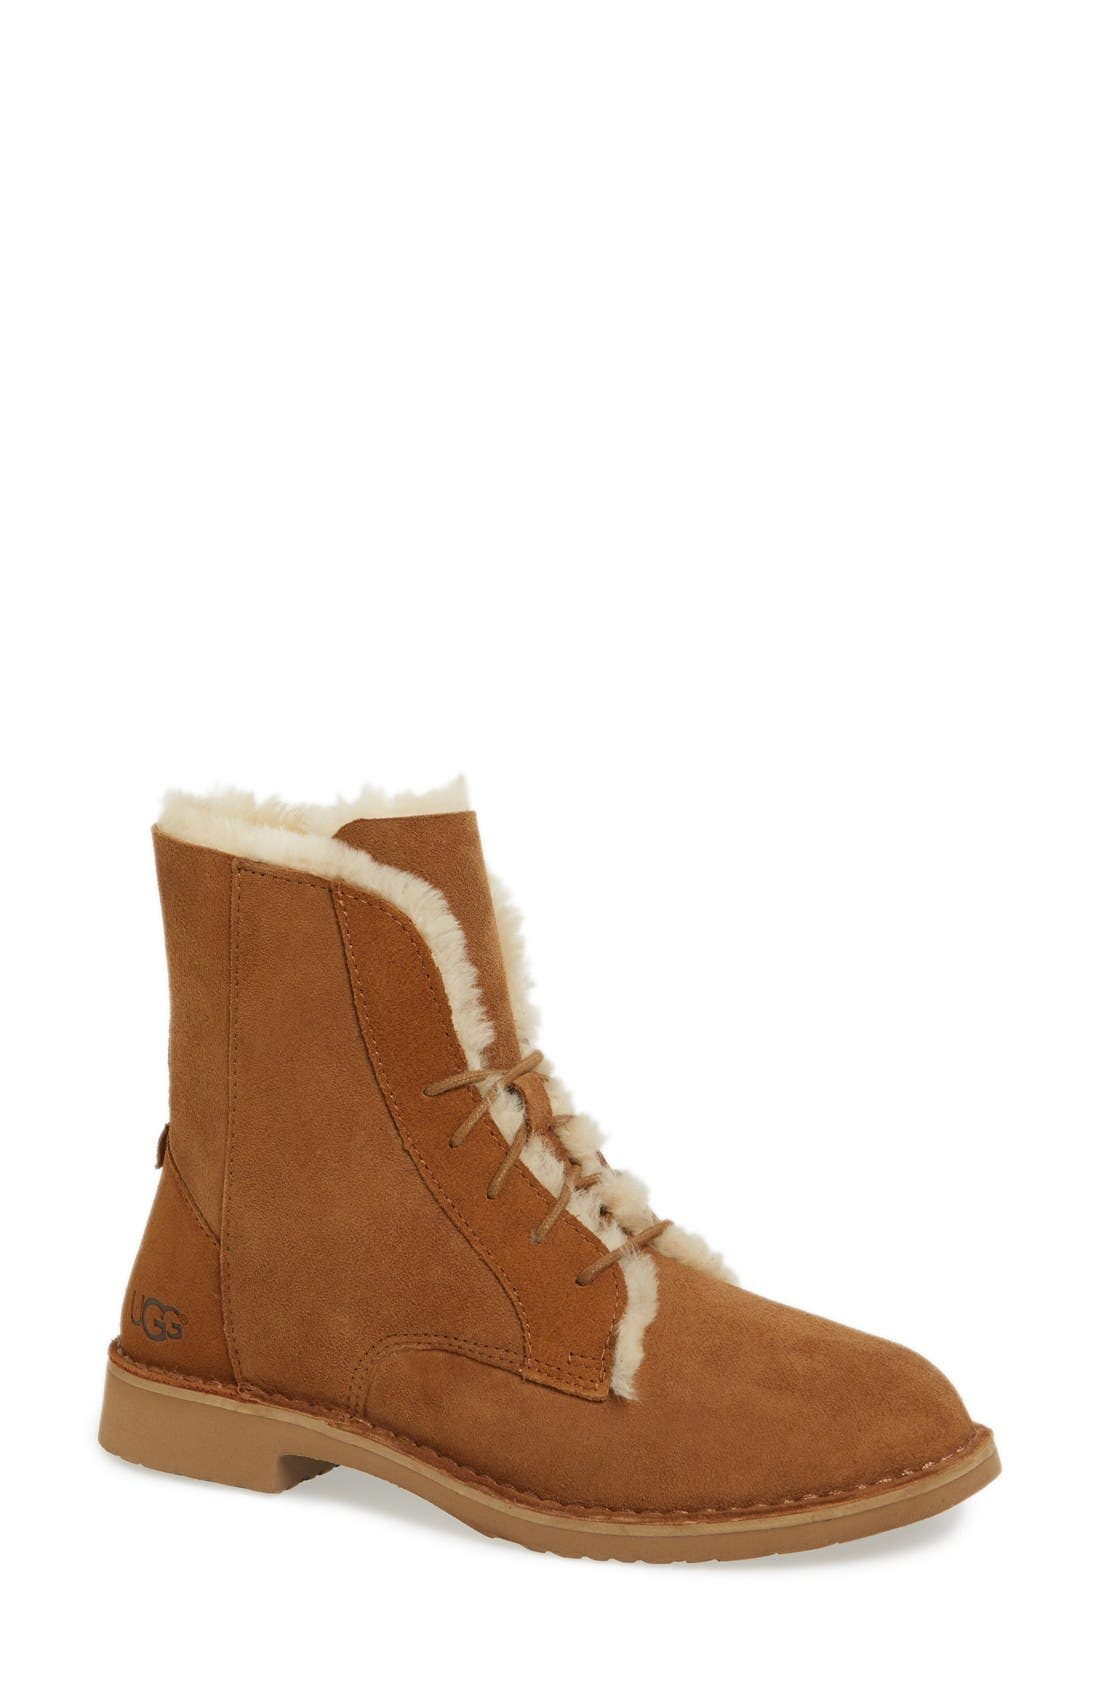 QUINCY LEATHER AND SHEEPSKIN LACE UP BOOTIES